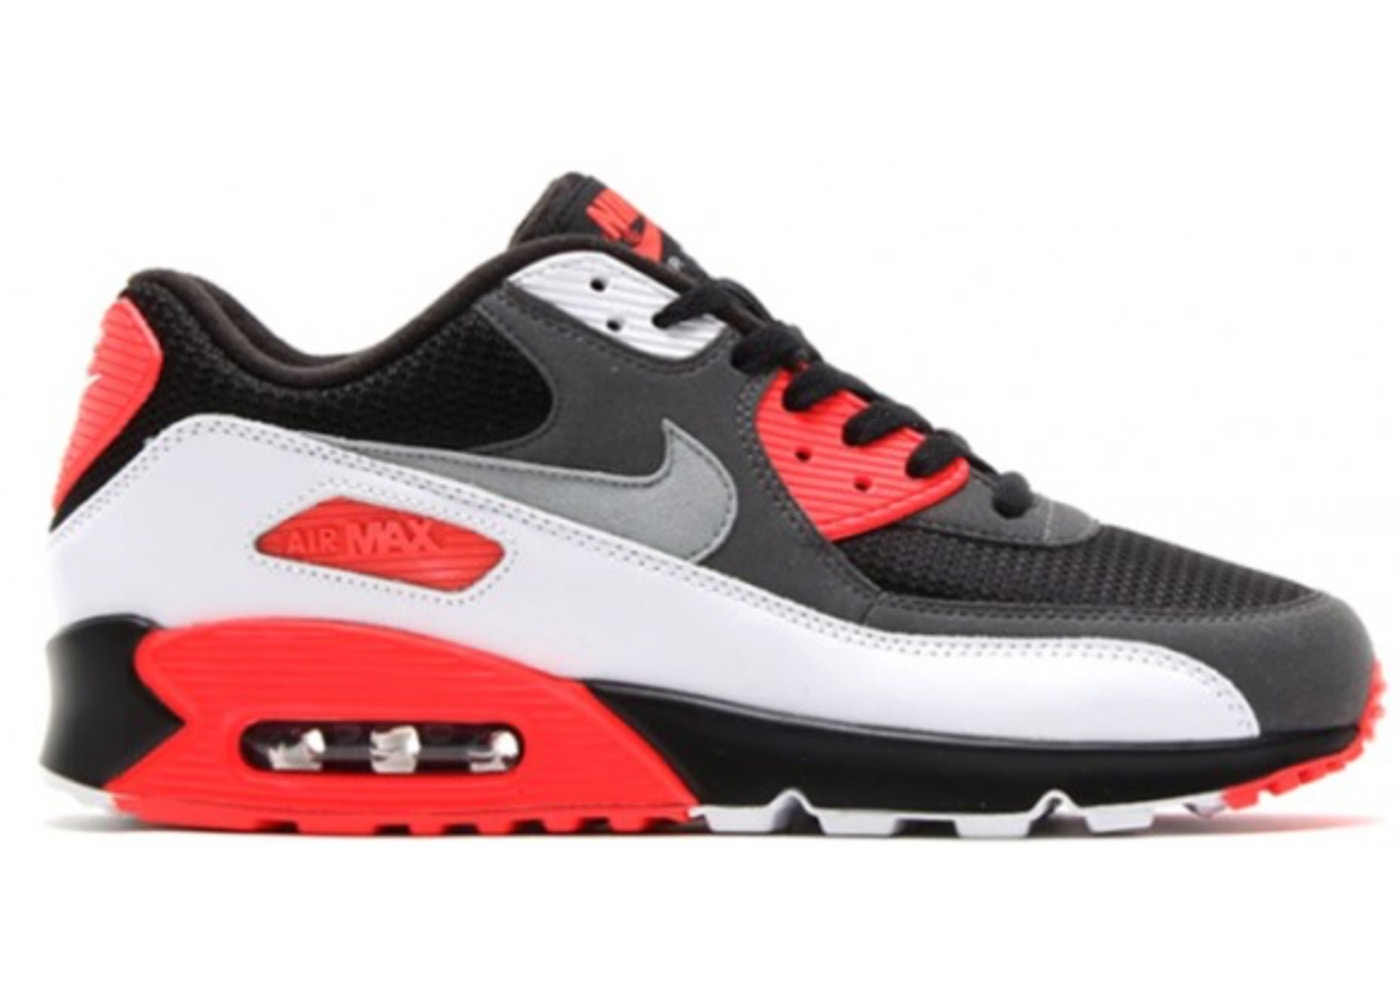 finest selection 19d5f 0b22a Nike Air Max 90 Essential Black / Red New Men's Trainers - True Looks